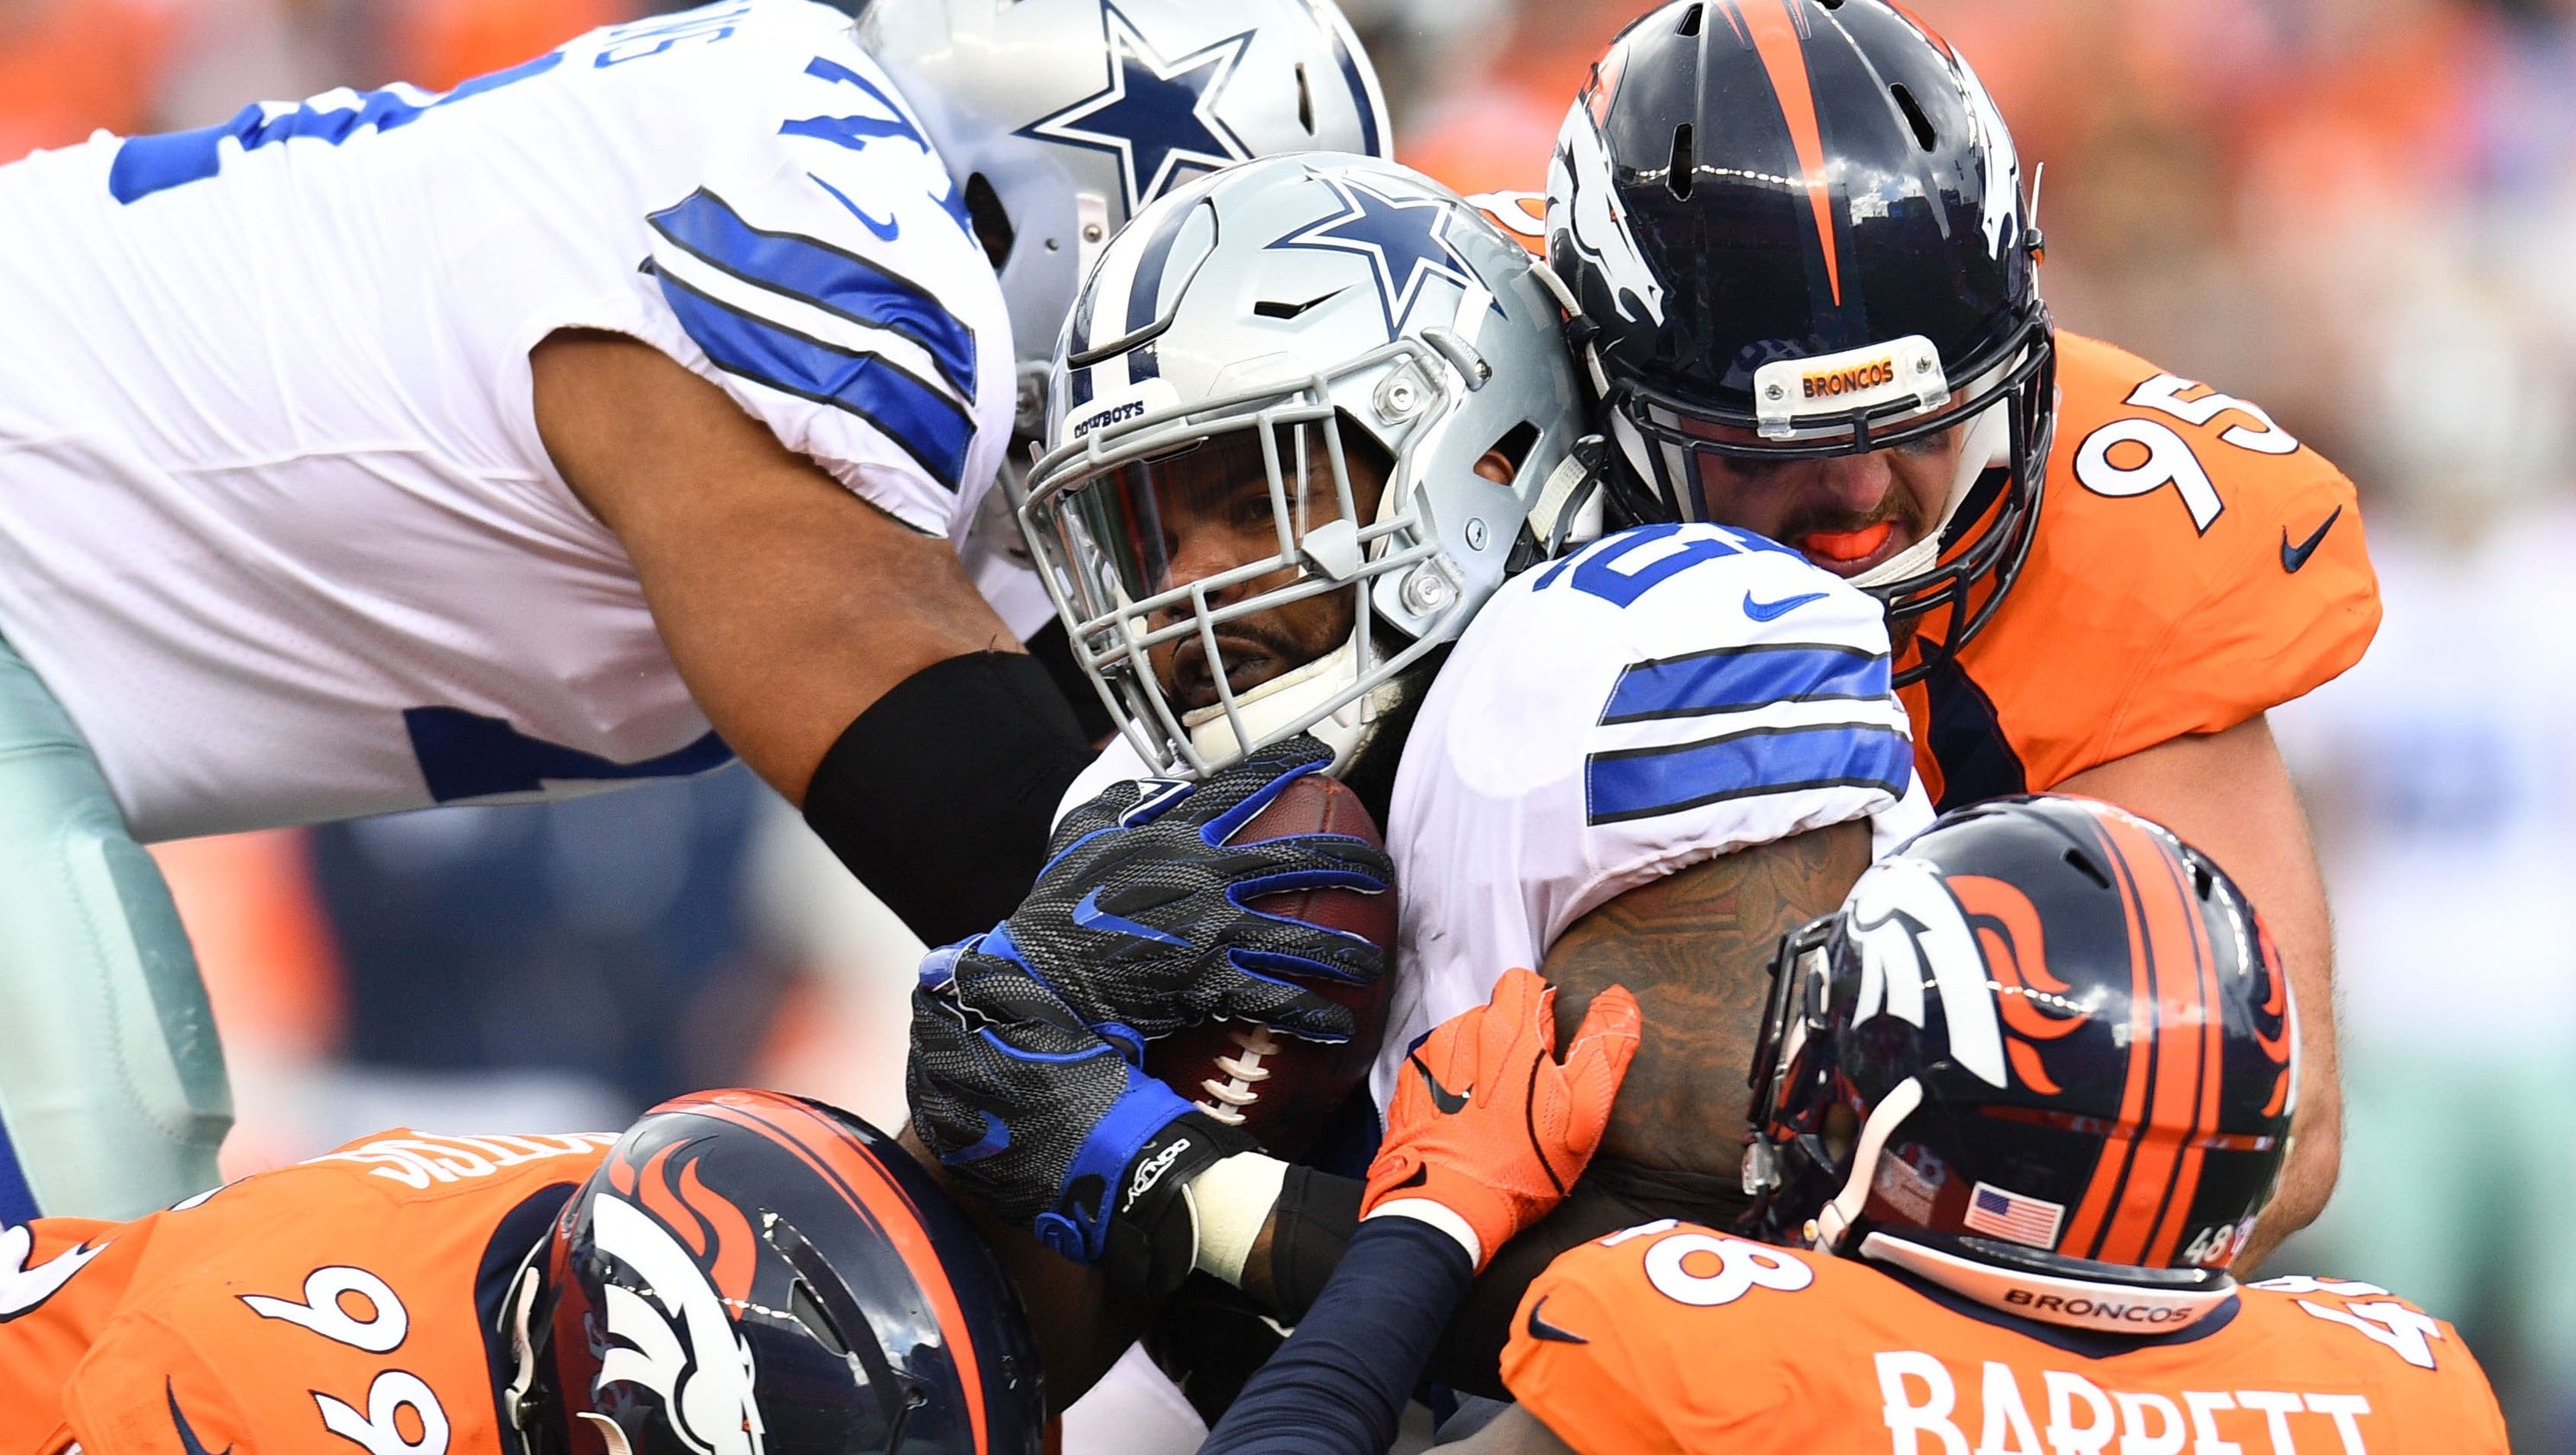 cowboys vs broncos - photo #25